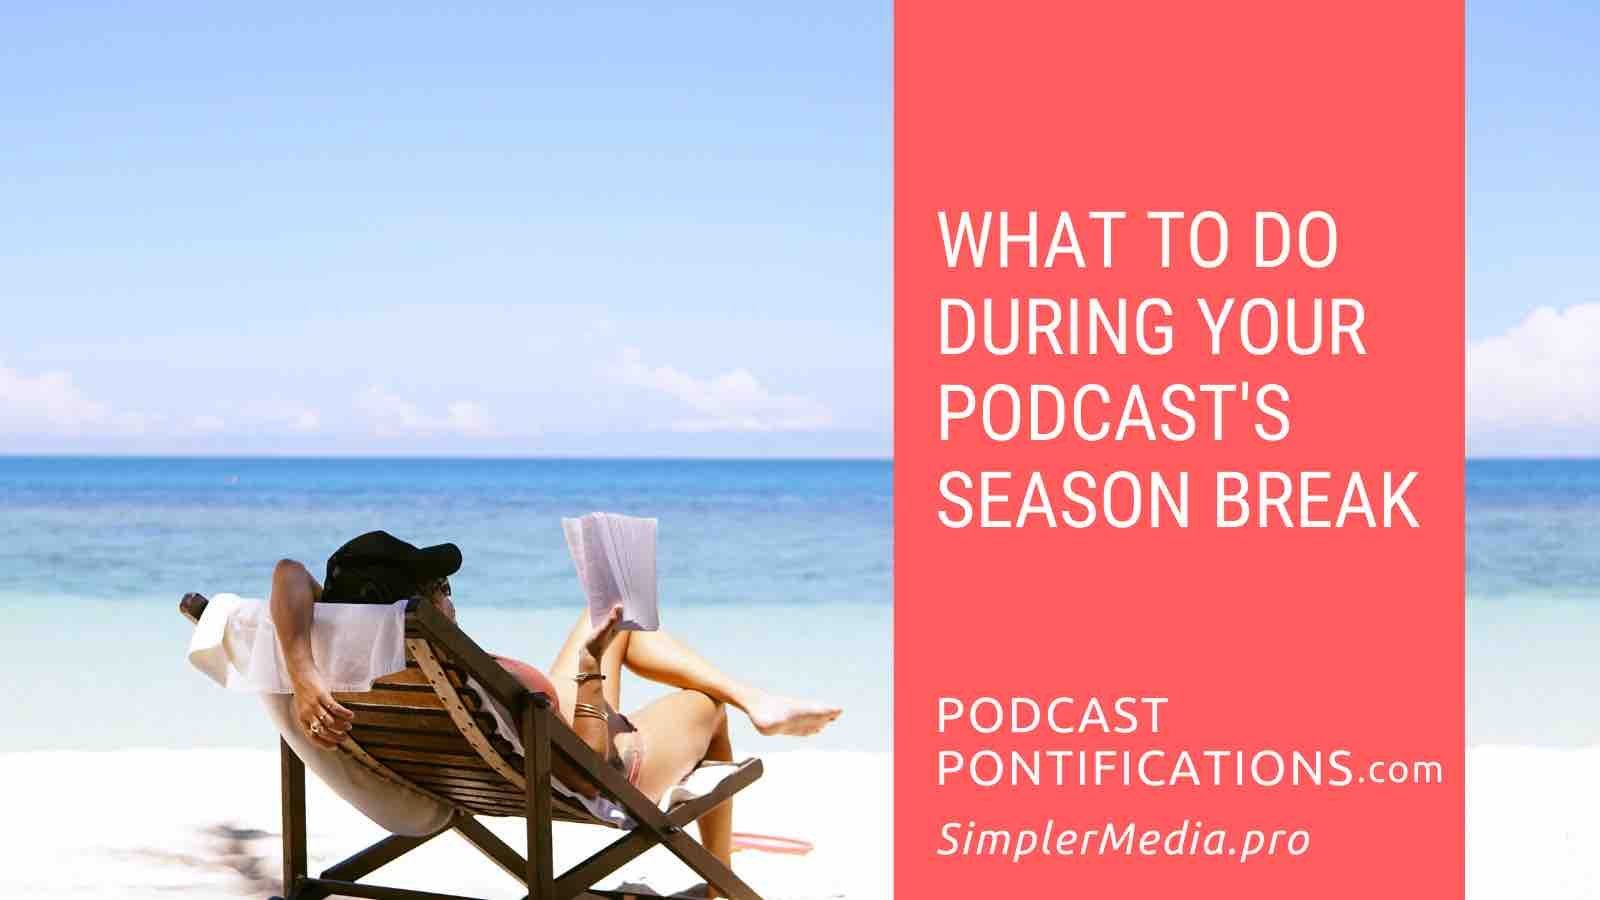 What To Do During Your Podcast's Season Break